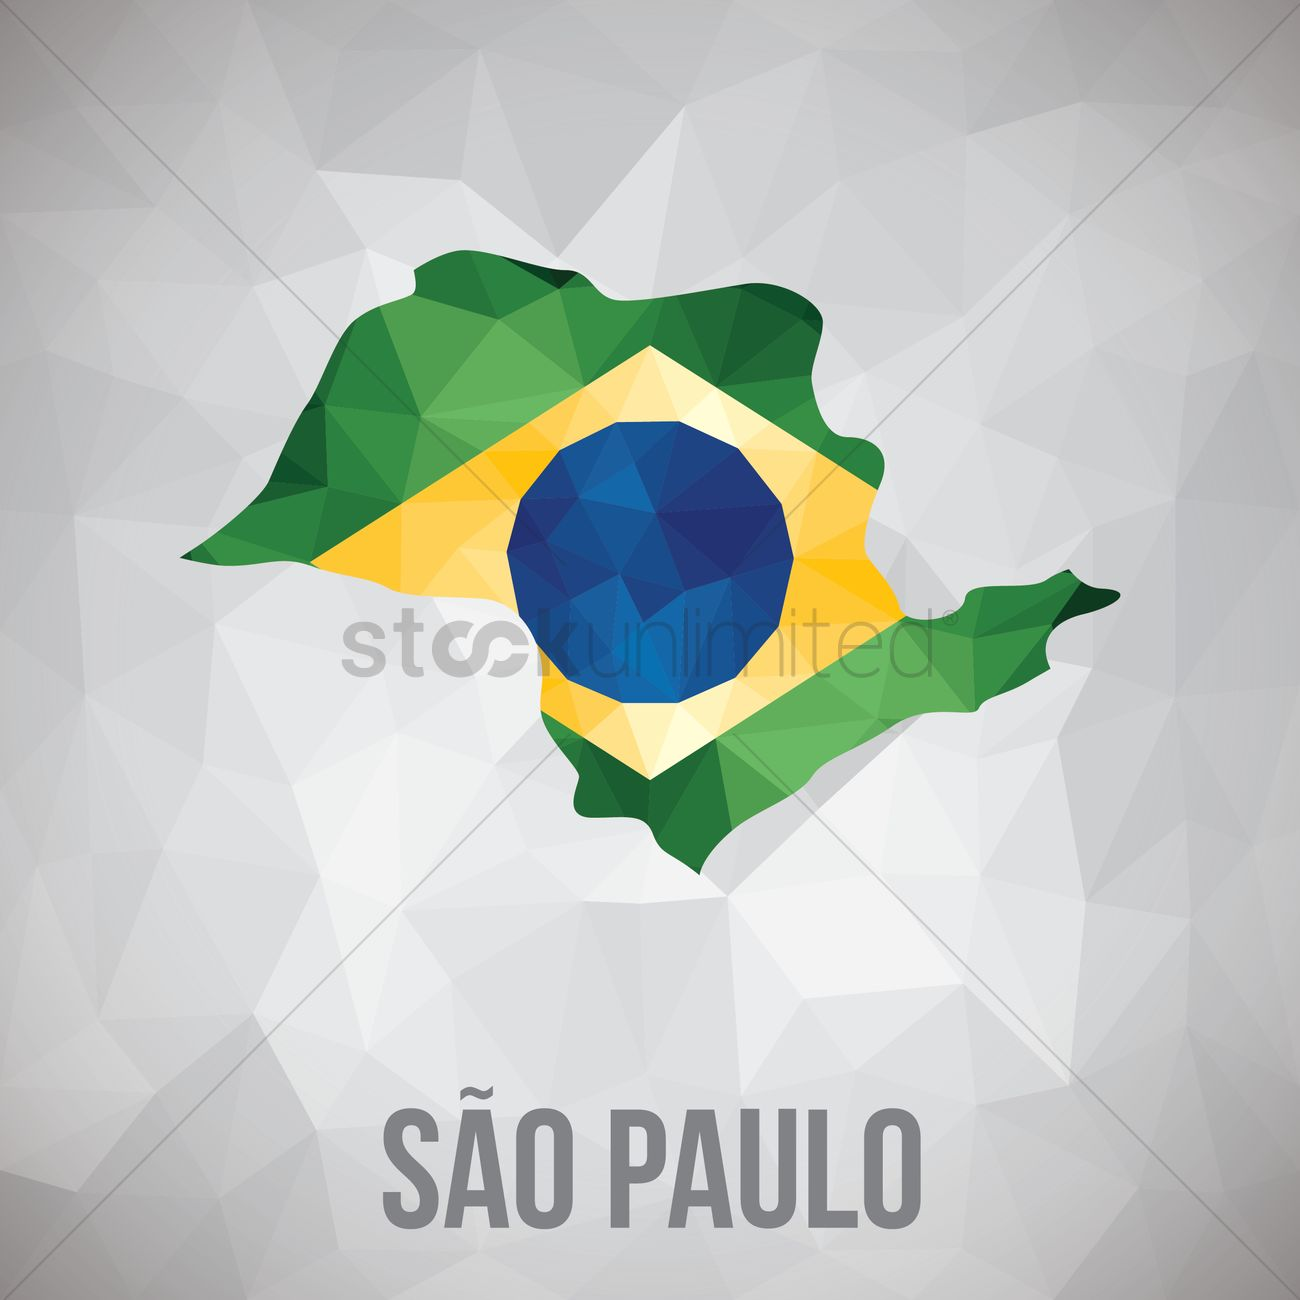 Sao paulo state map Vector Image - 1581124 | StockUnlimited on map of sri lanka, map of maldives, map of saudi arabia, map of japan, map of thailand, map of french polynesia, map of ecuador, map of afghanistan, map of paraguay, map of lithuania, map of iraq, map of pakistan, map of tasmania, map of cyprus, map of cornwall, map of morocco, map of chile, map of brasilia, map of venezuela, map of shanghai,